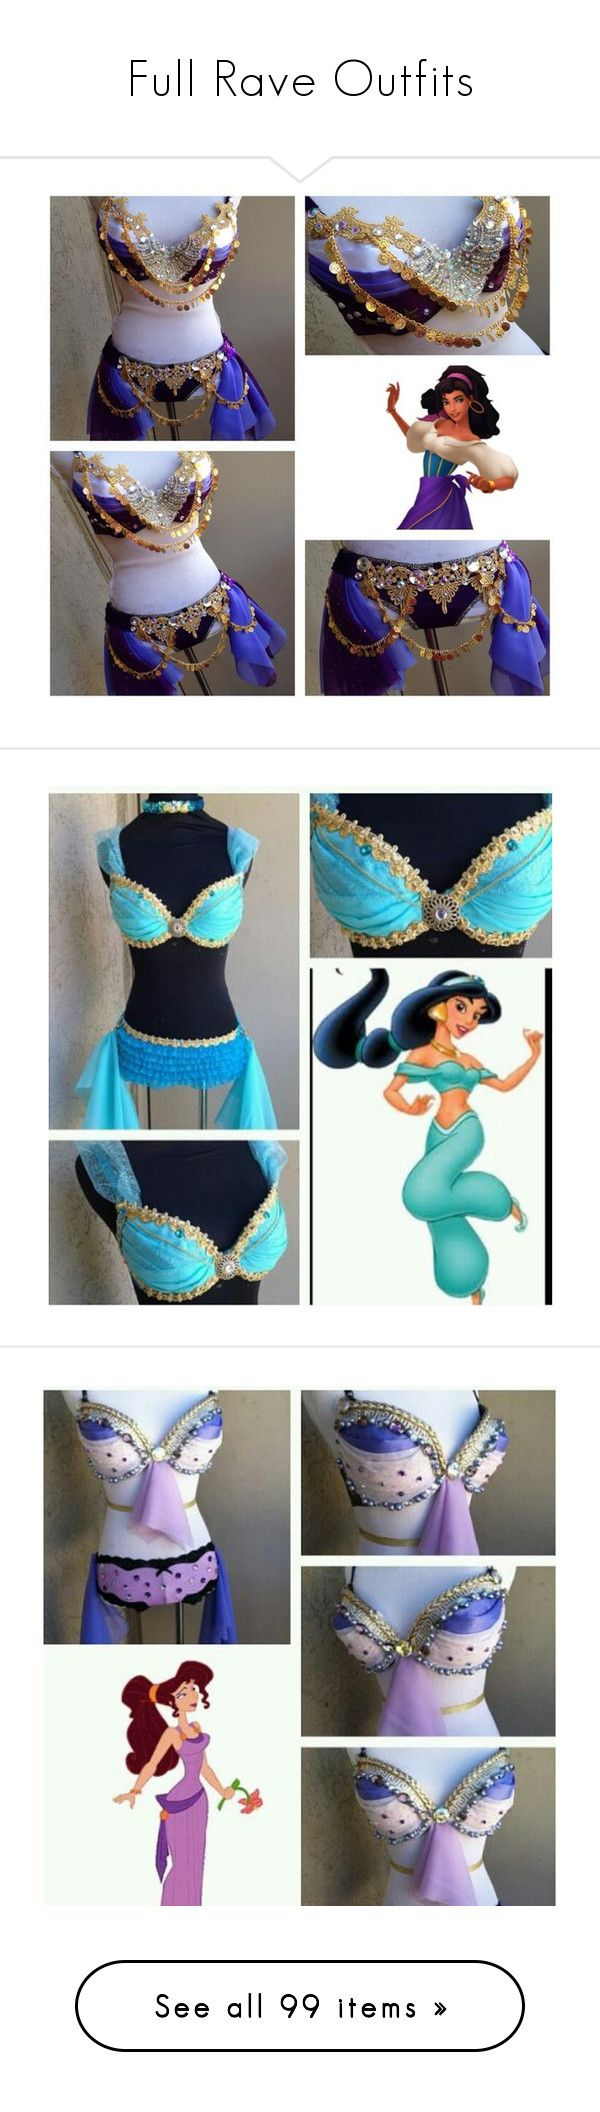 """""""Full Rave Outfits"""" by real-ruby-horan ❤ liked on Polyvore featuring costumes, dresses, rave, outfits, sexy princess costumes, ariel costume, tomorrowland, carnival costumes, sexy costumes and party costumes"""